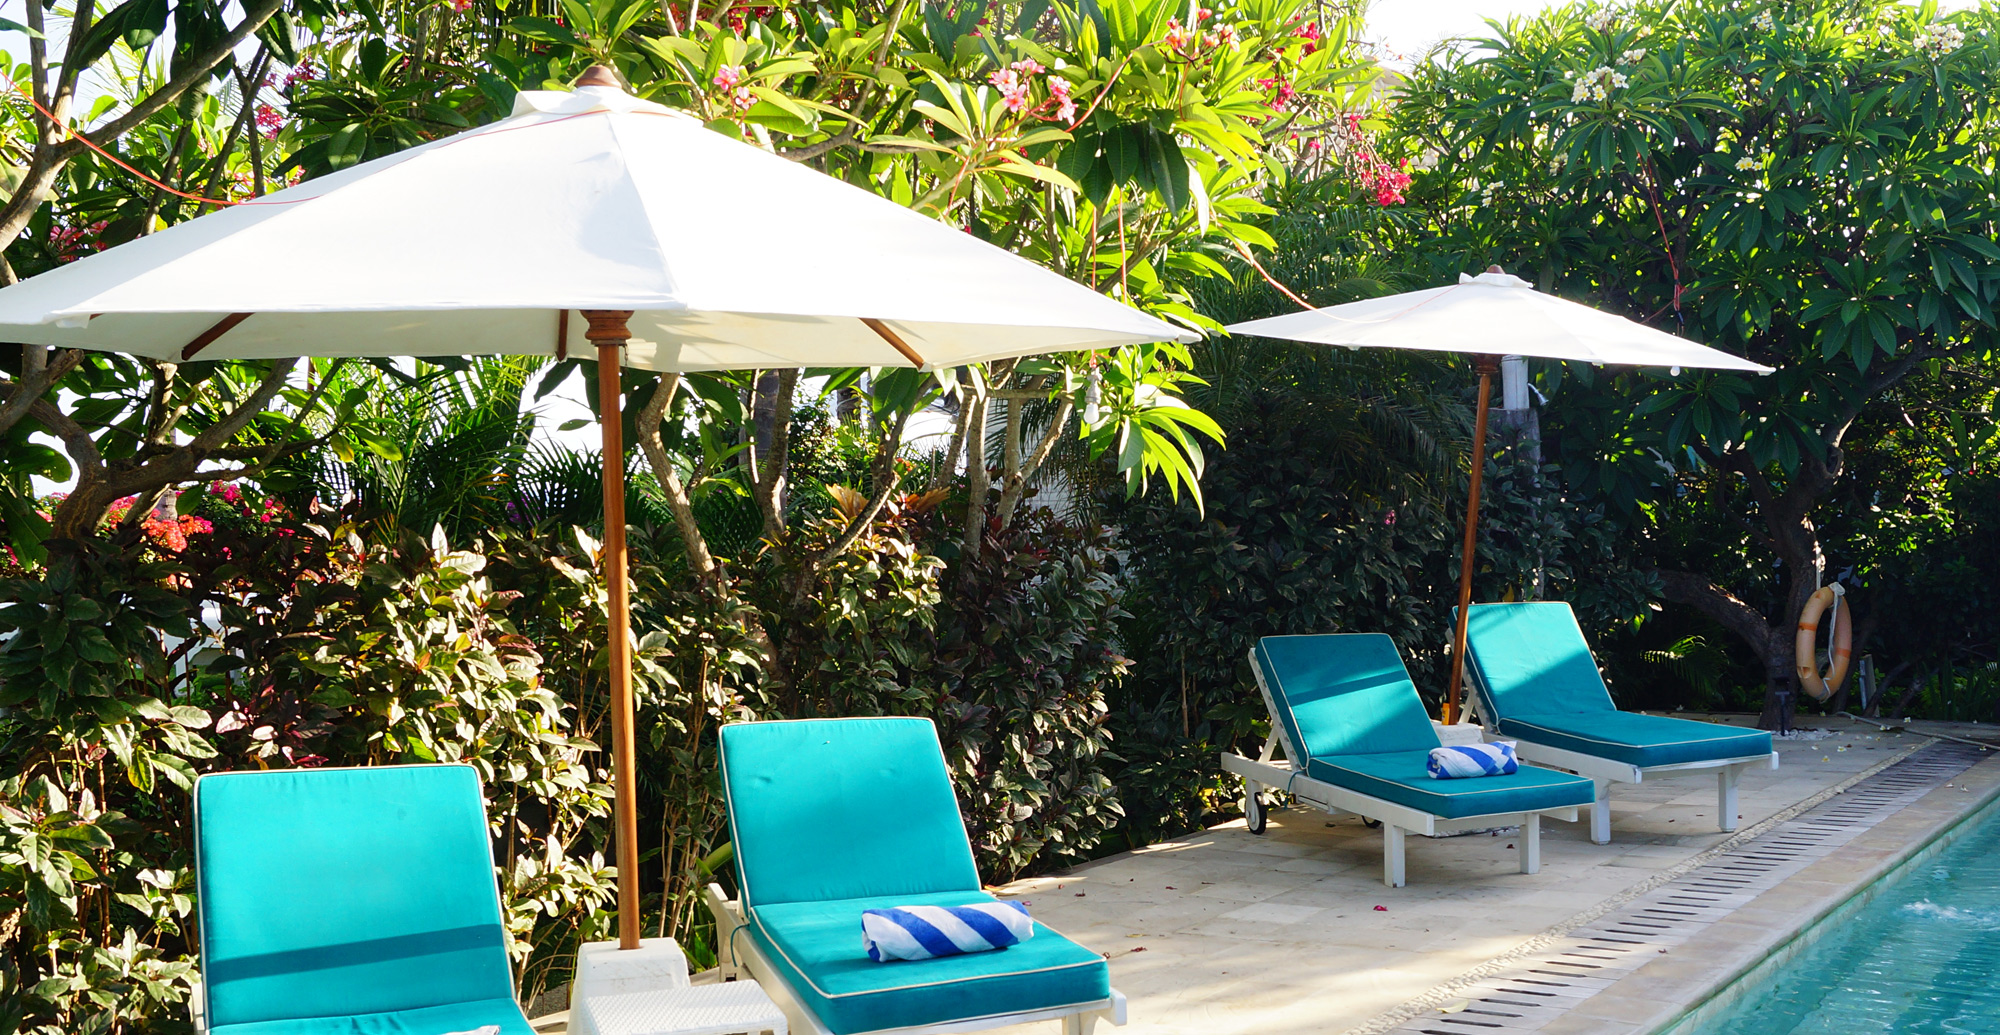 Clean patio umbrellas and awnings with Wet & Forget Outdoor